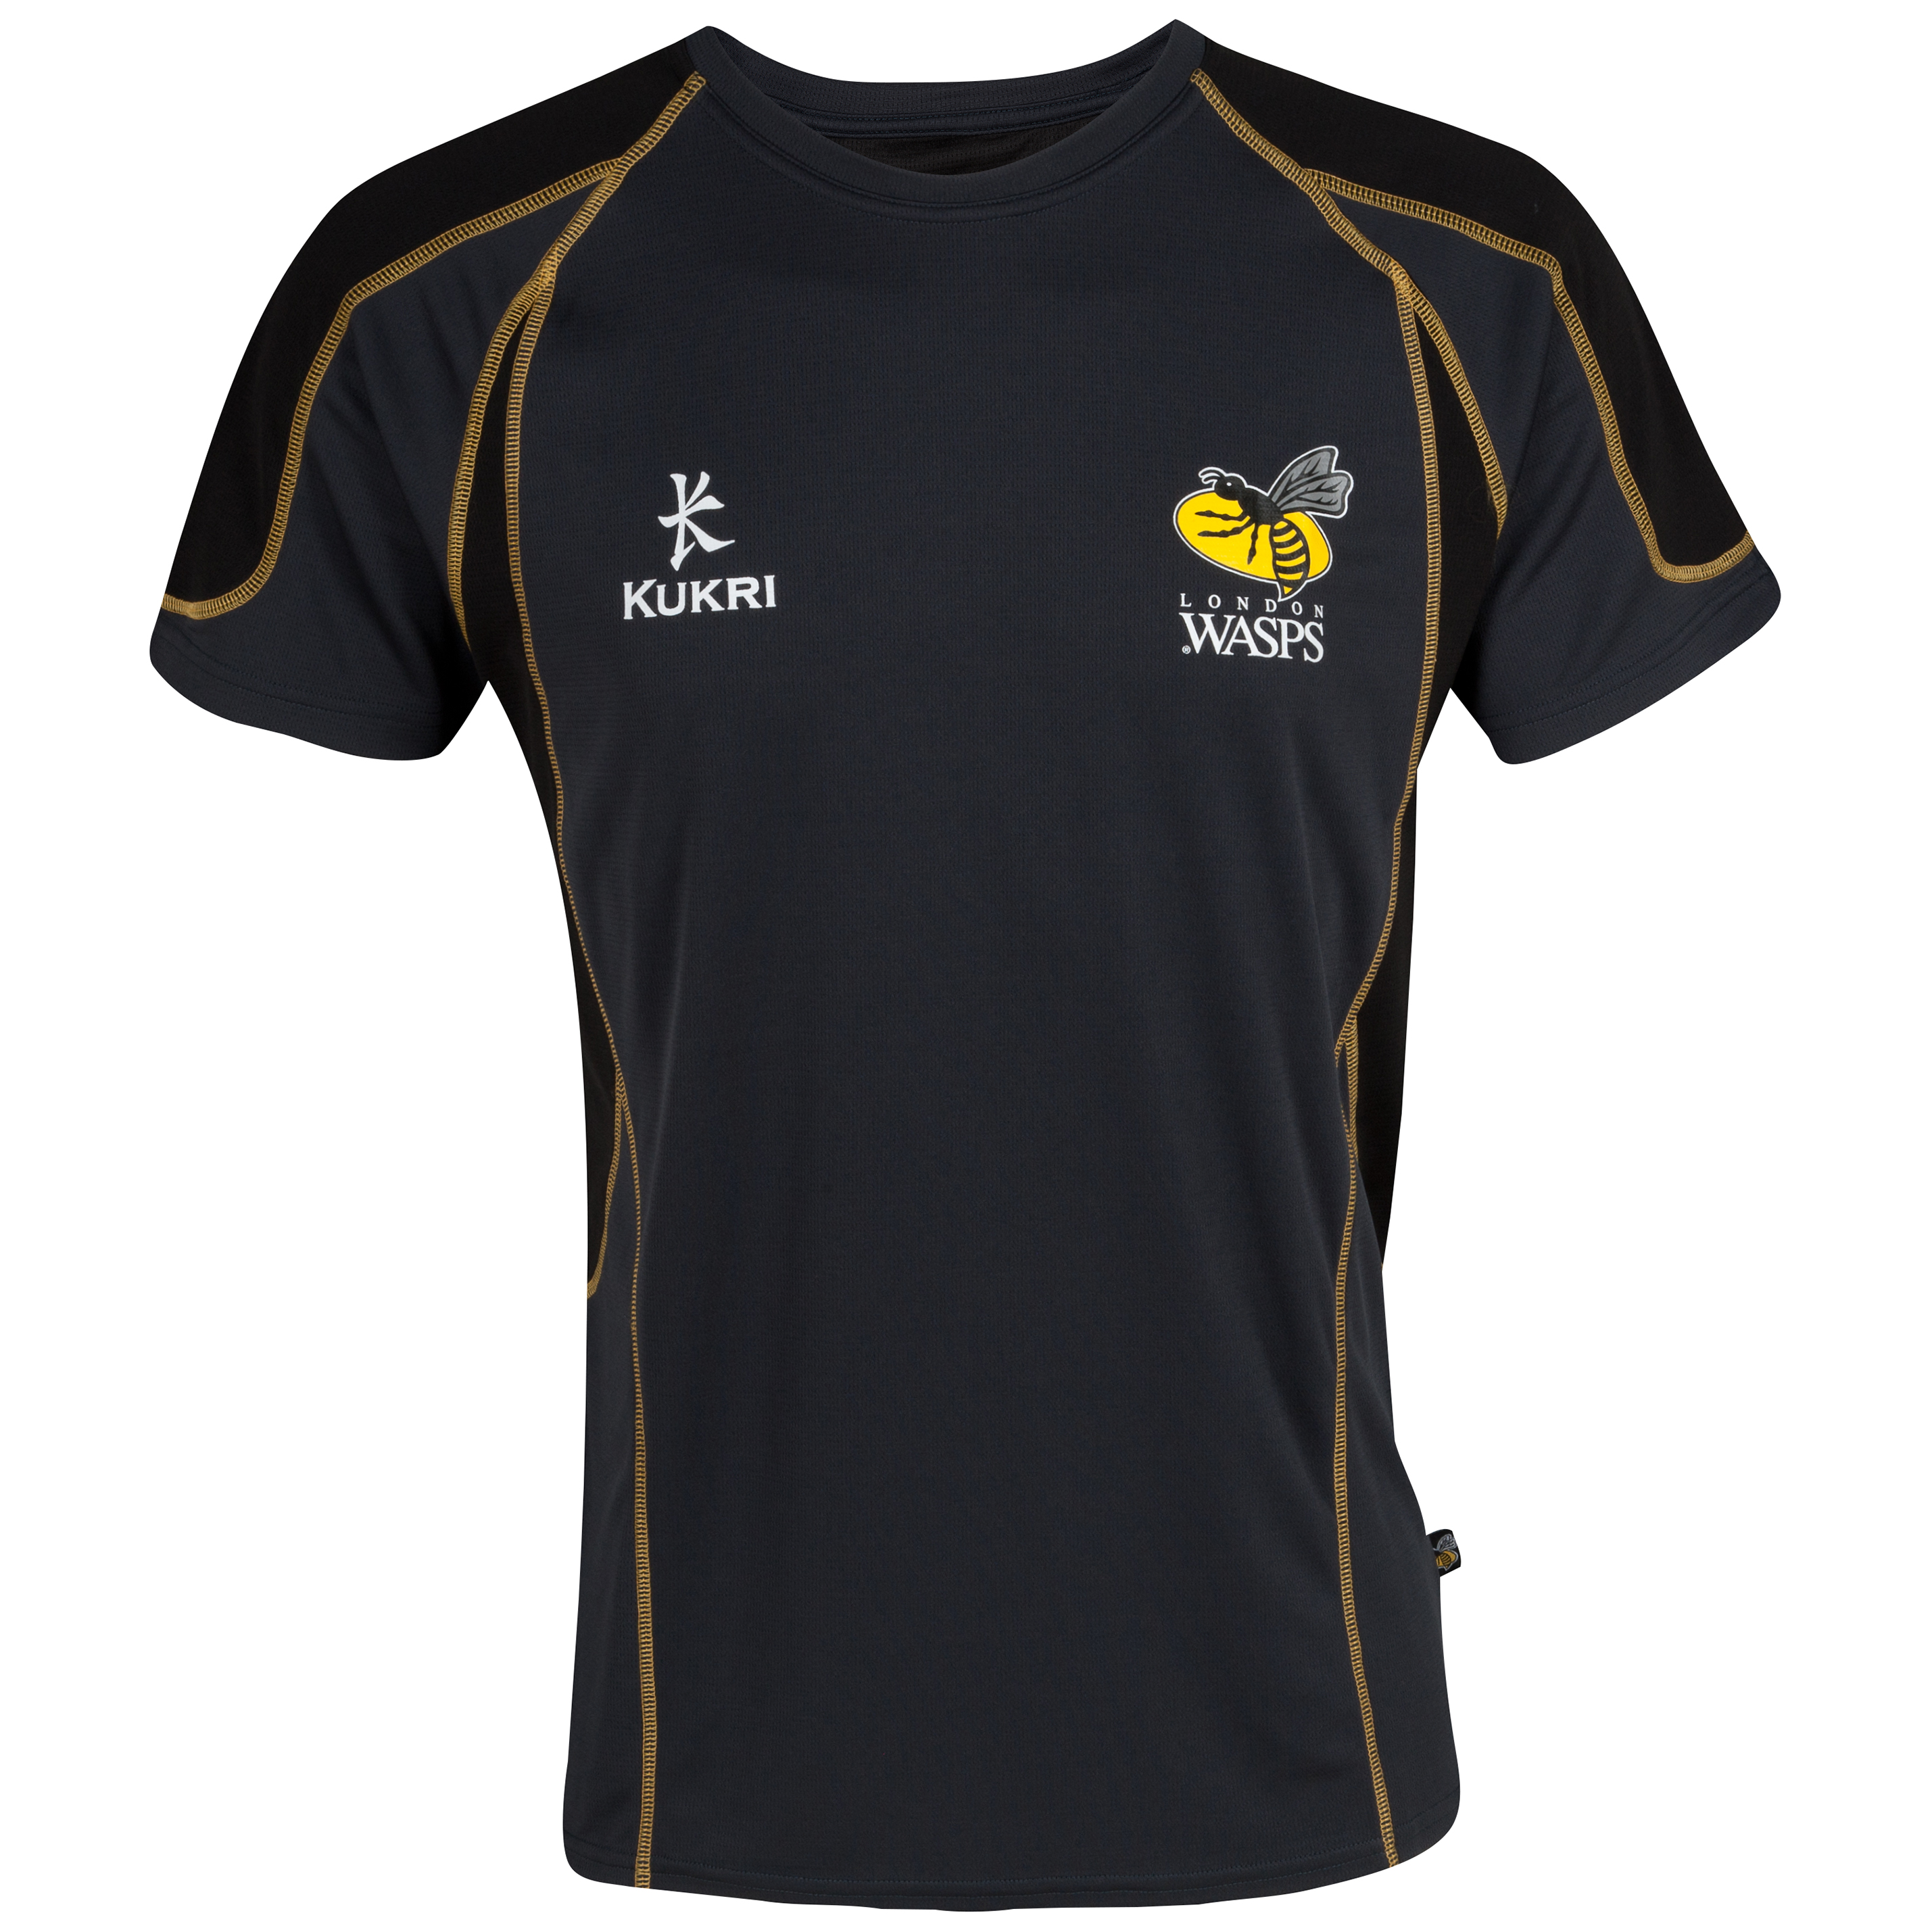 Wasps Performance T-Shirt - Black